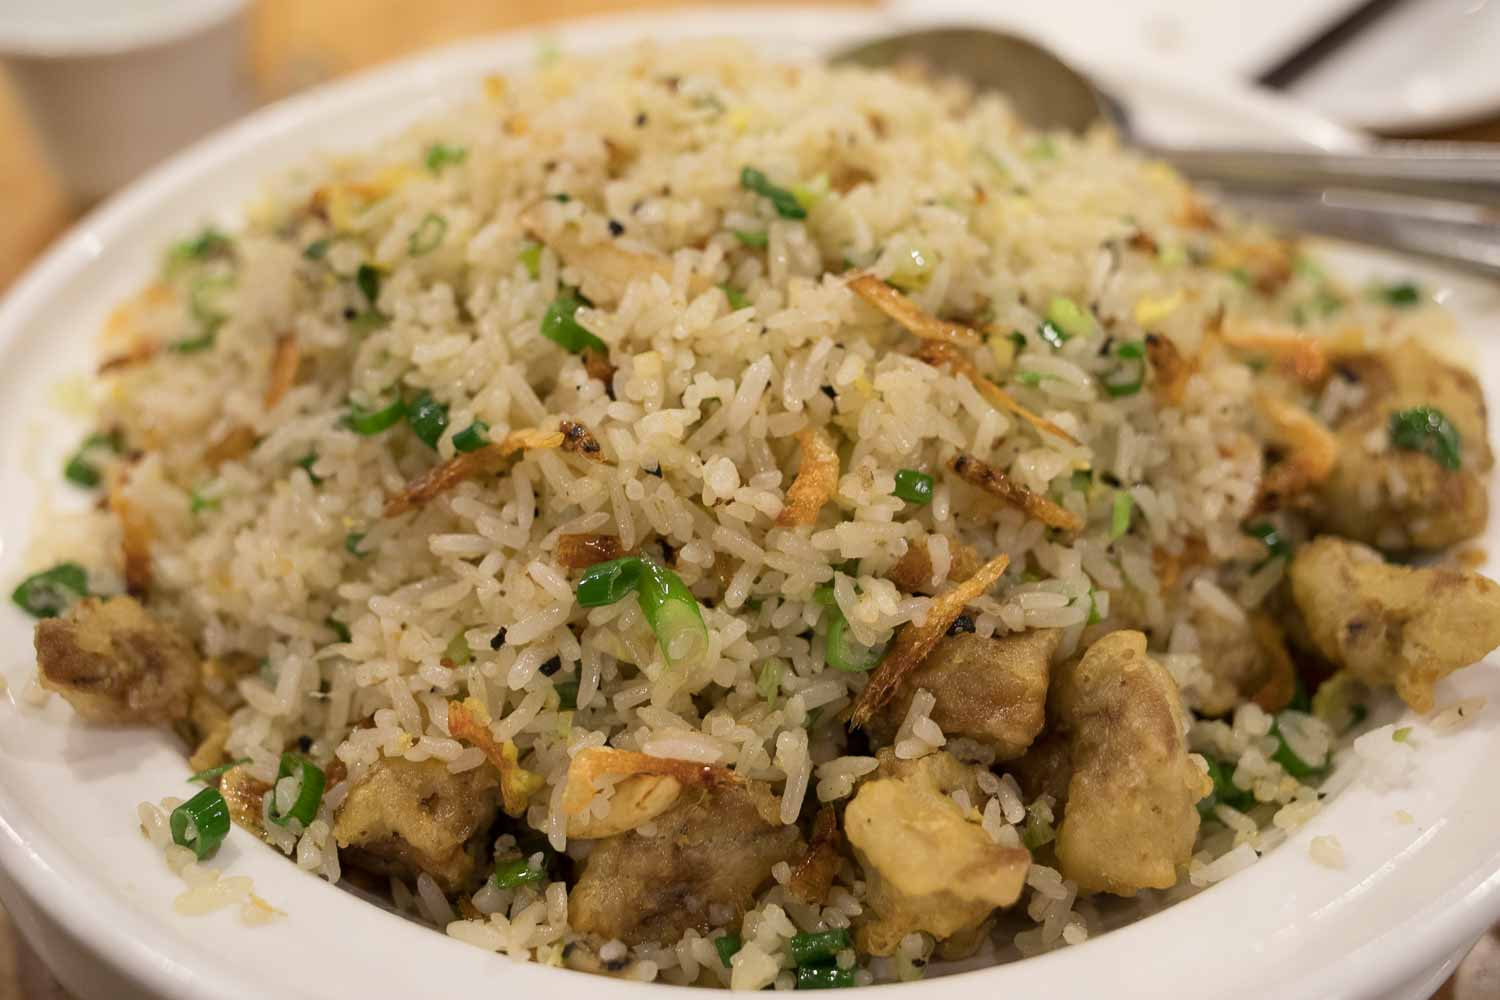 Daly city ca koi palace sf bay area california hungry onion foie gras truffle sakura shrimp fried rice i think it was 28 the star were the sakura shrimps who added a briny saltiness and savoriness to the fried ccuart Gallery